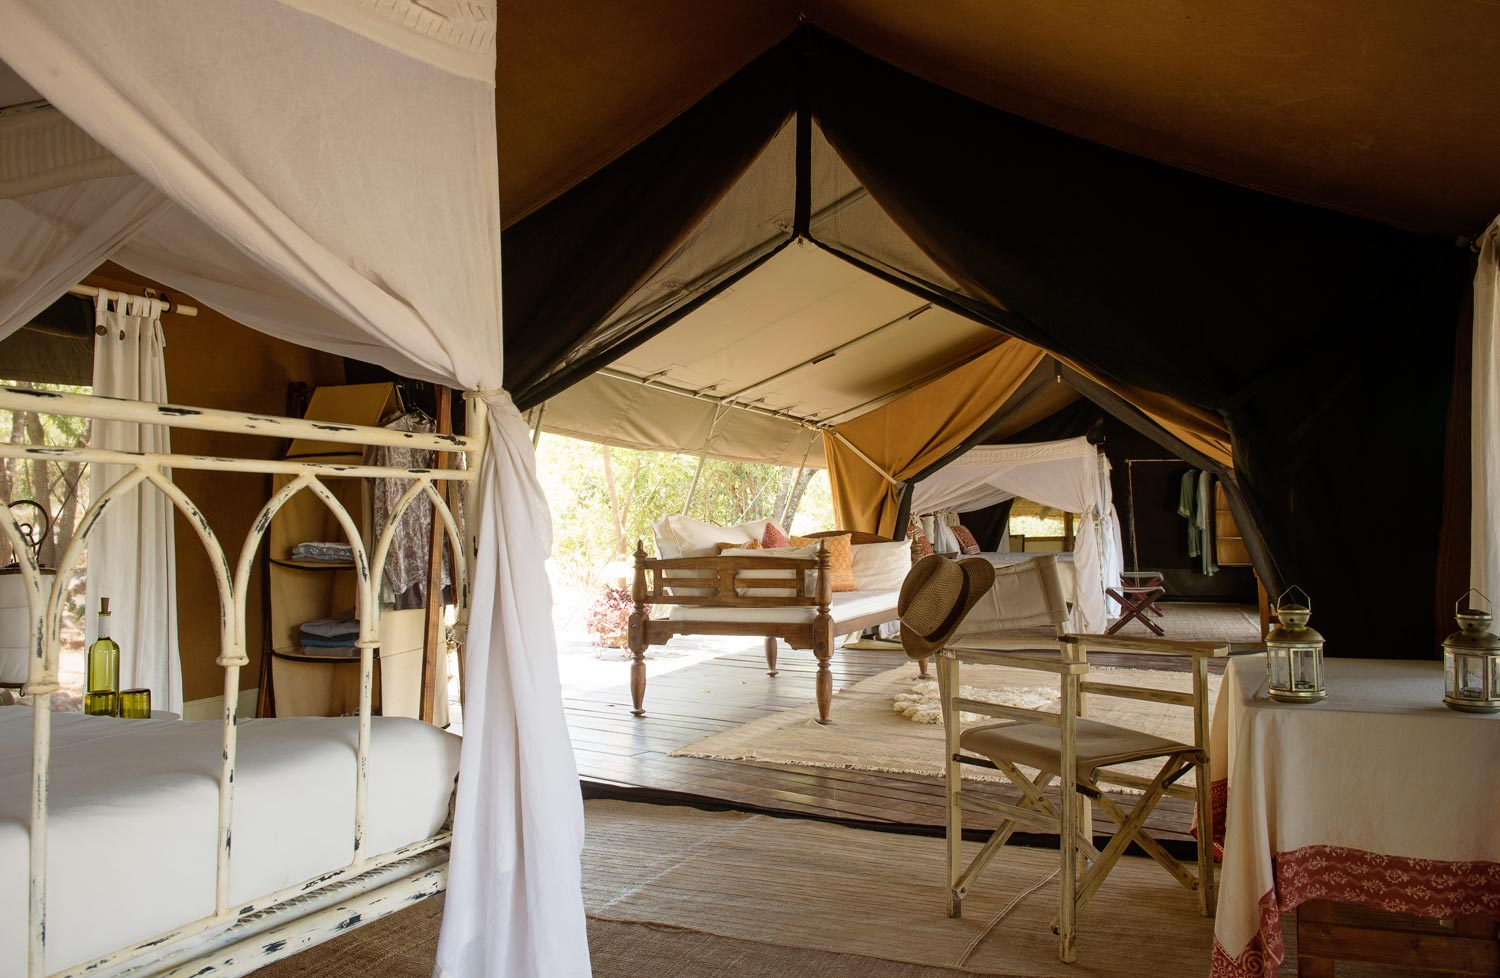 Alex Walker's Serian Camps – Kenya 8 Days / 7 Nights